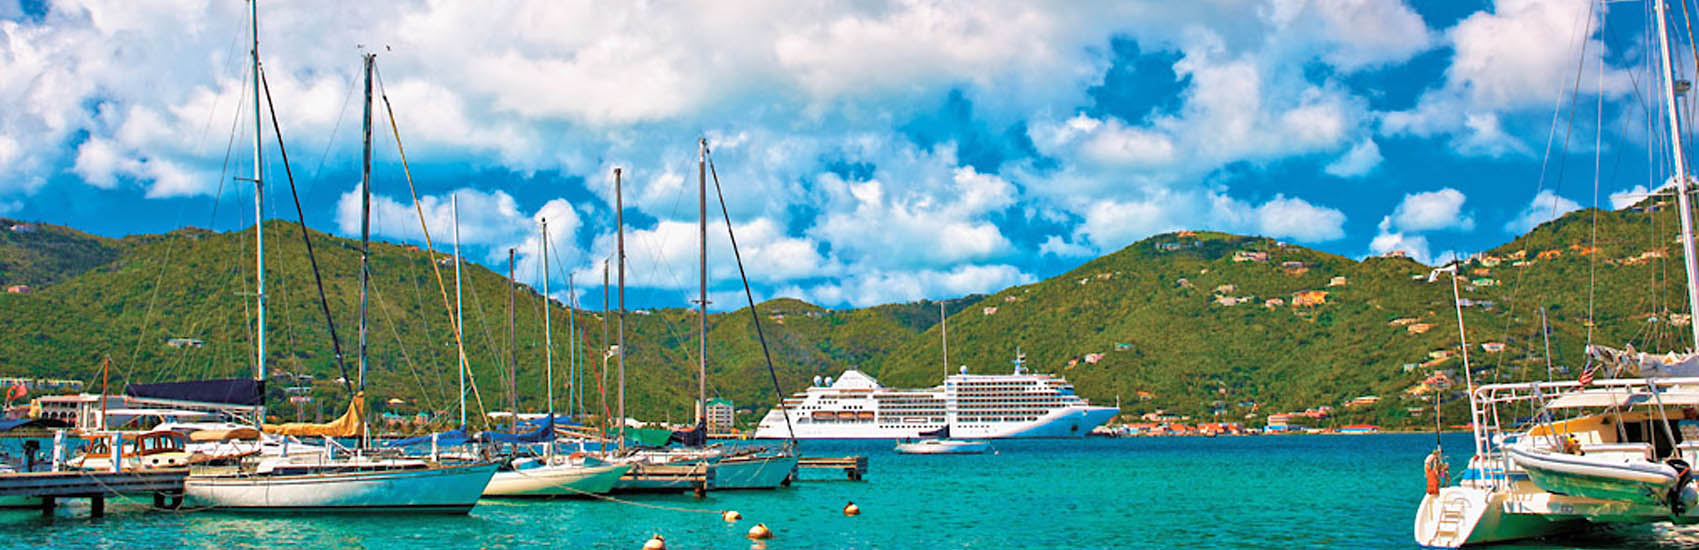 Get More Caribbean with Silversea Cruises